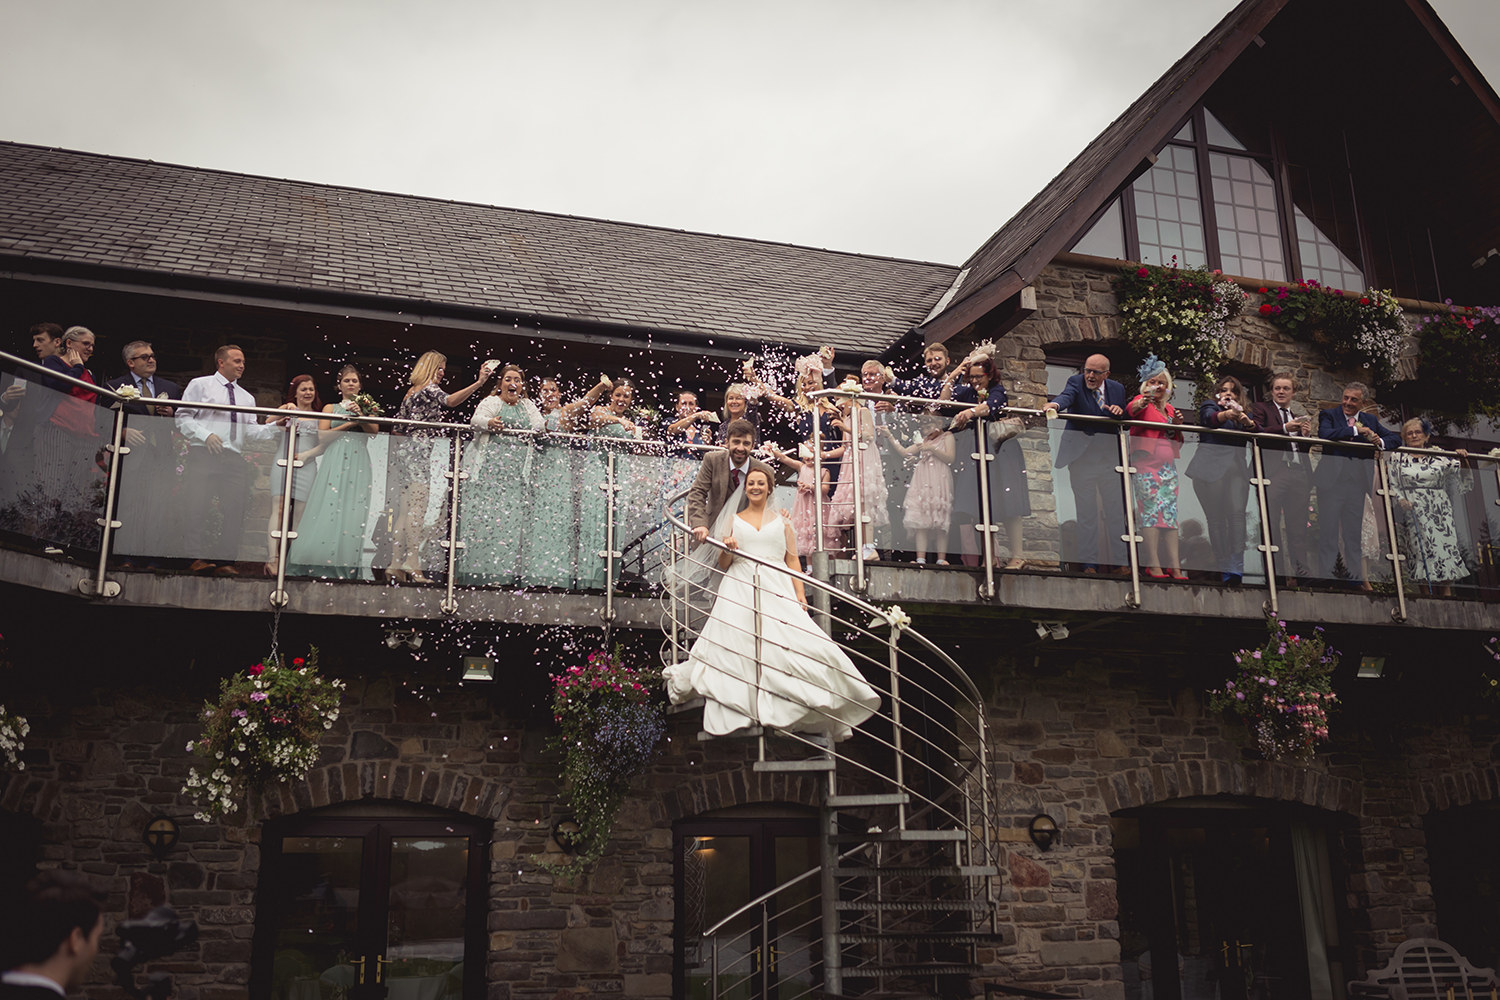 Bride and groom stading on stairs with family and friends throwing confetti over them